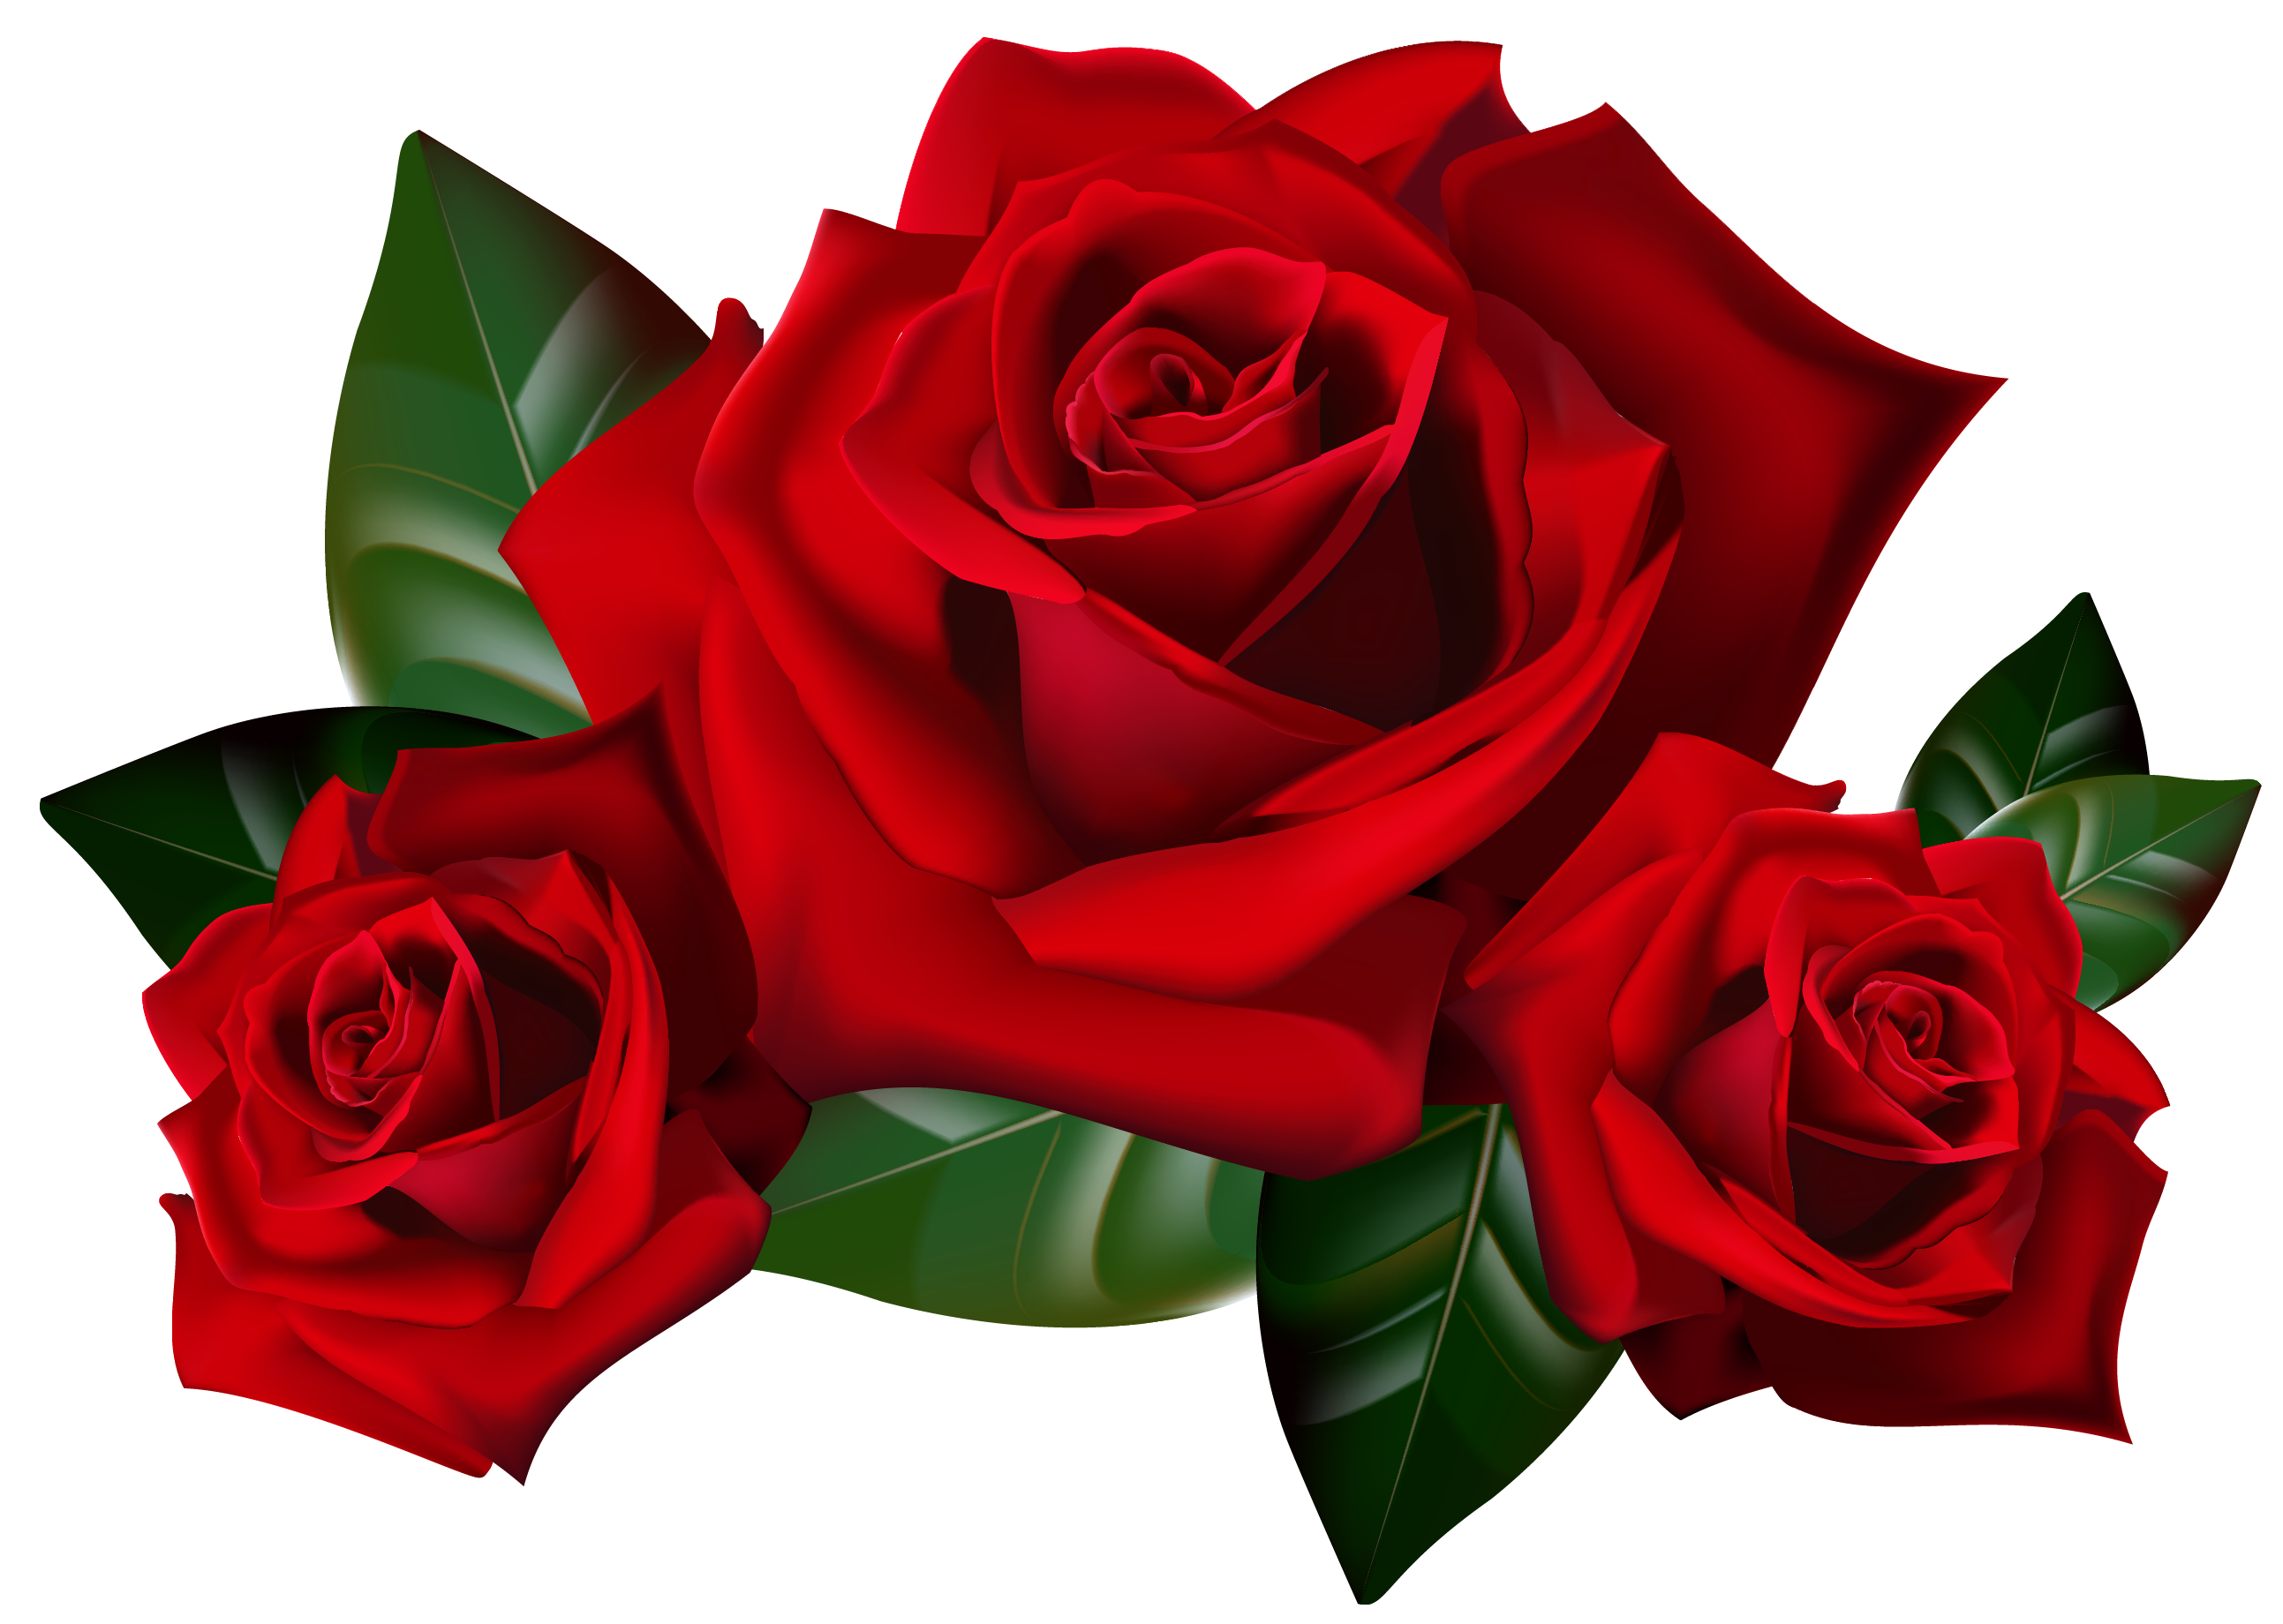 2586x1840 Stunning Design Red Rose Clipart Bouquet Of Roses Frame Kid Art